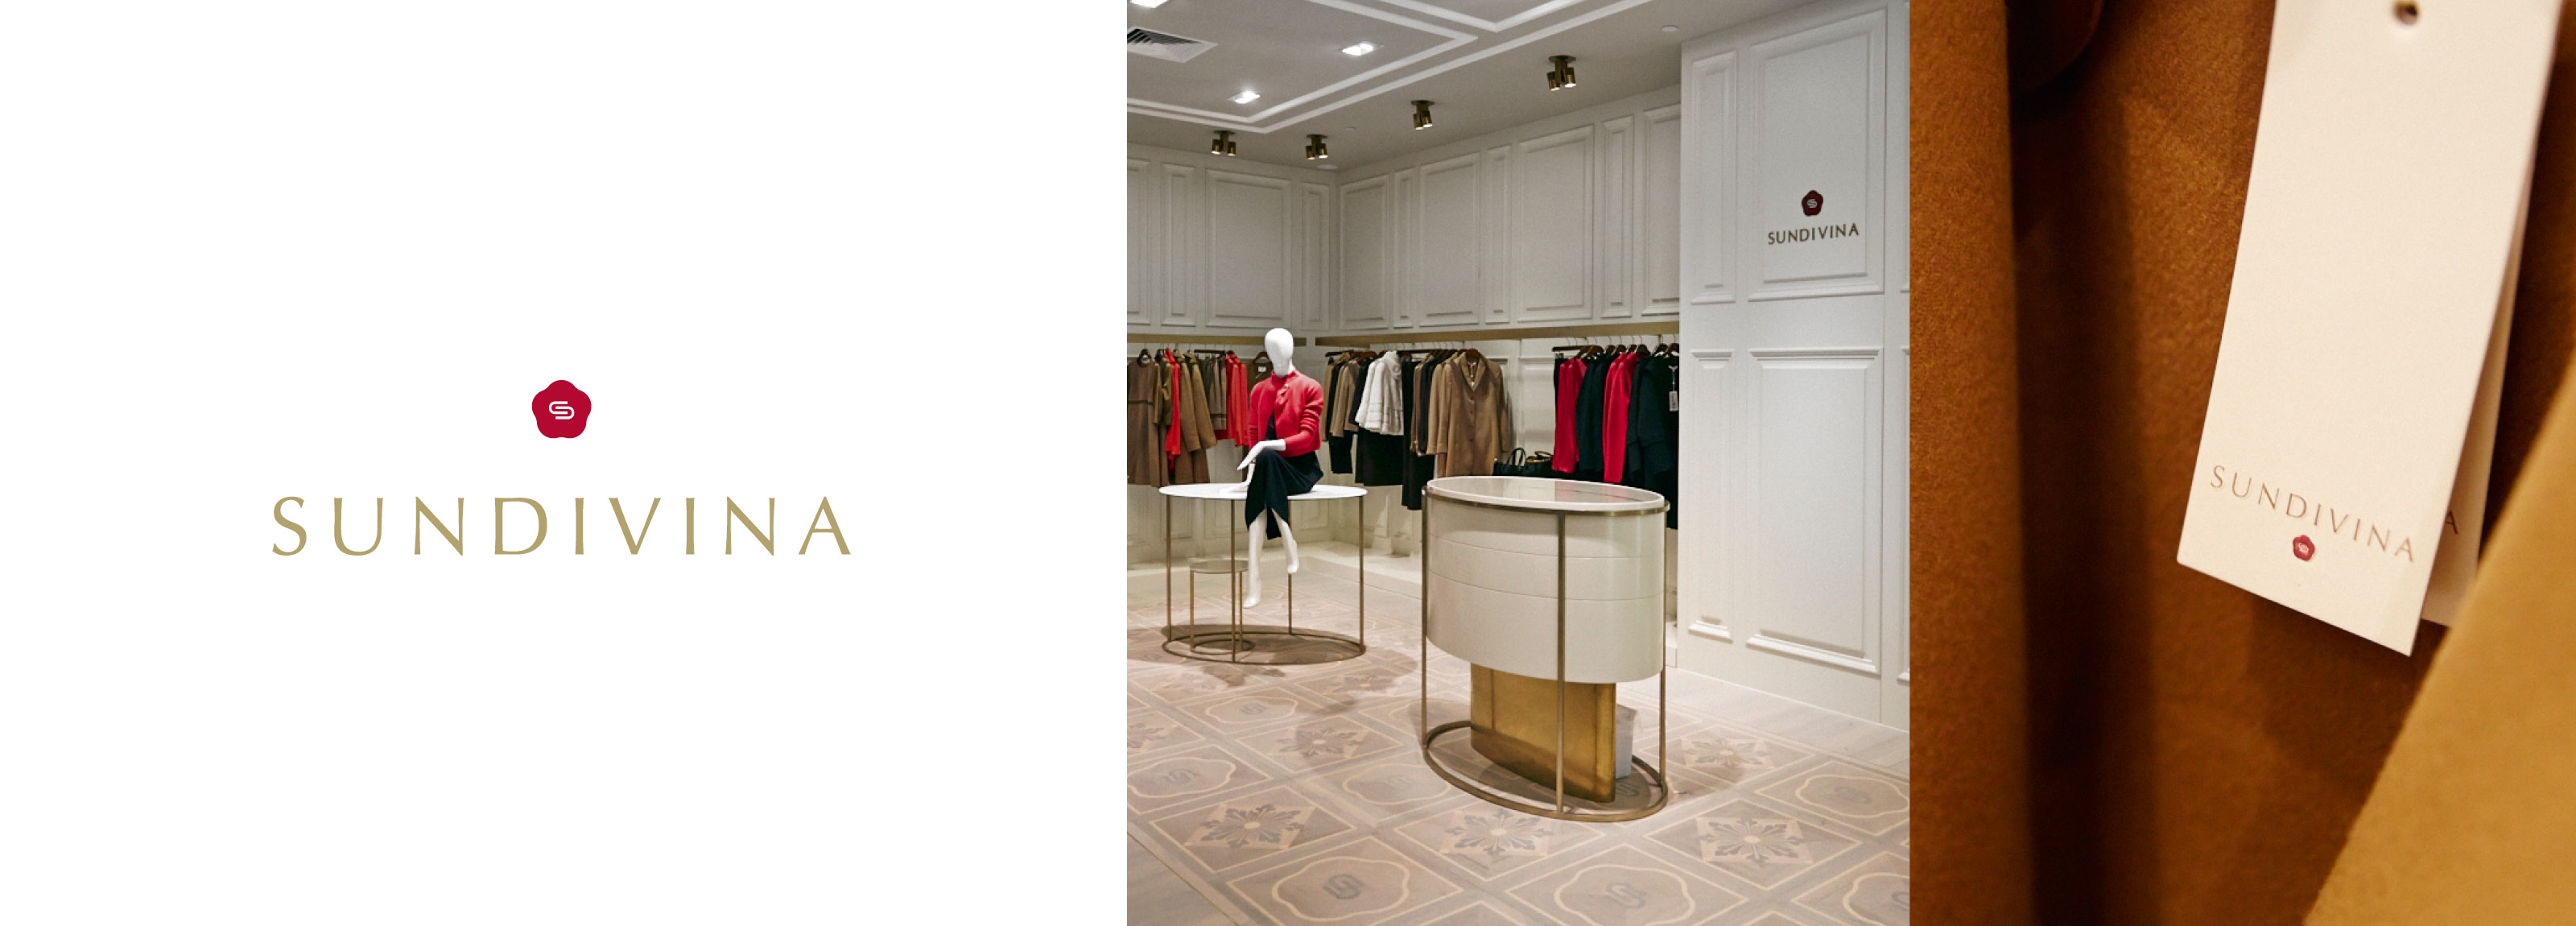 An exclusive retail project designed created by Hangar Design Group for the fashion brand Sundivina.